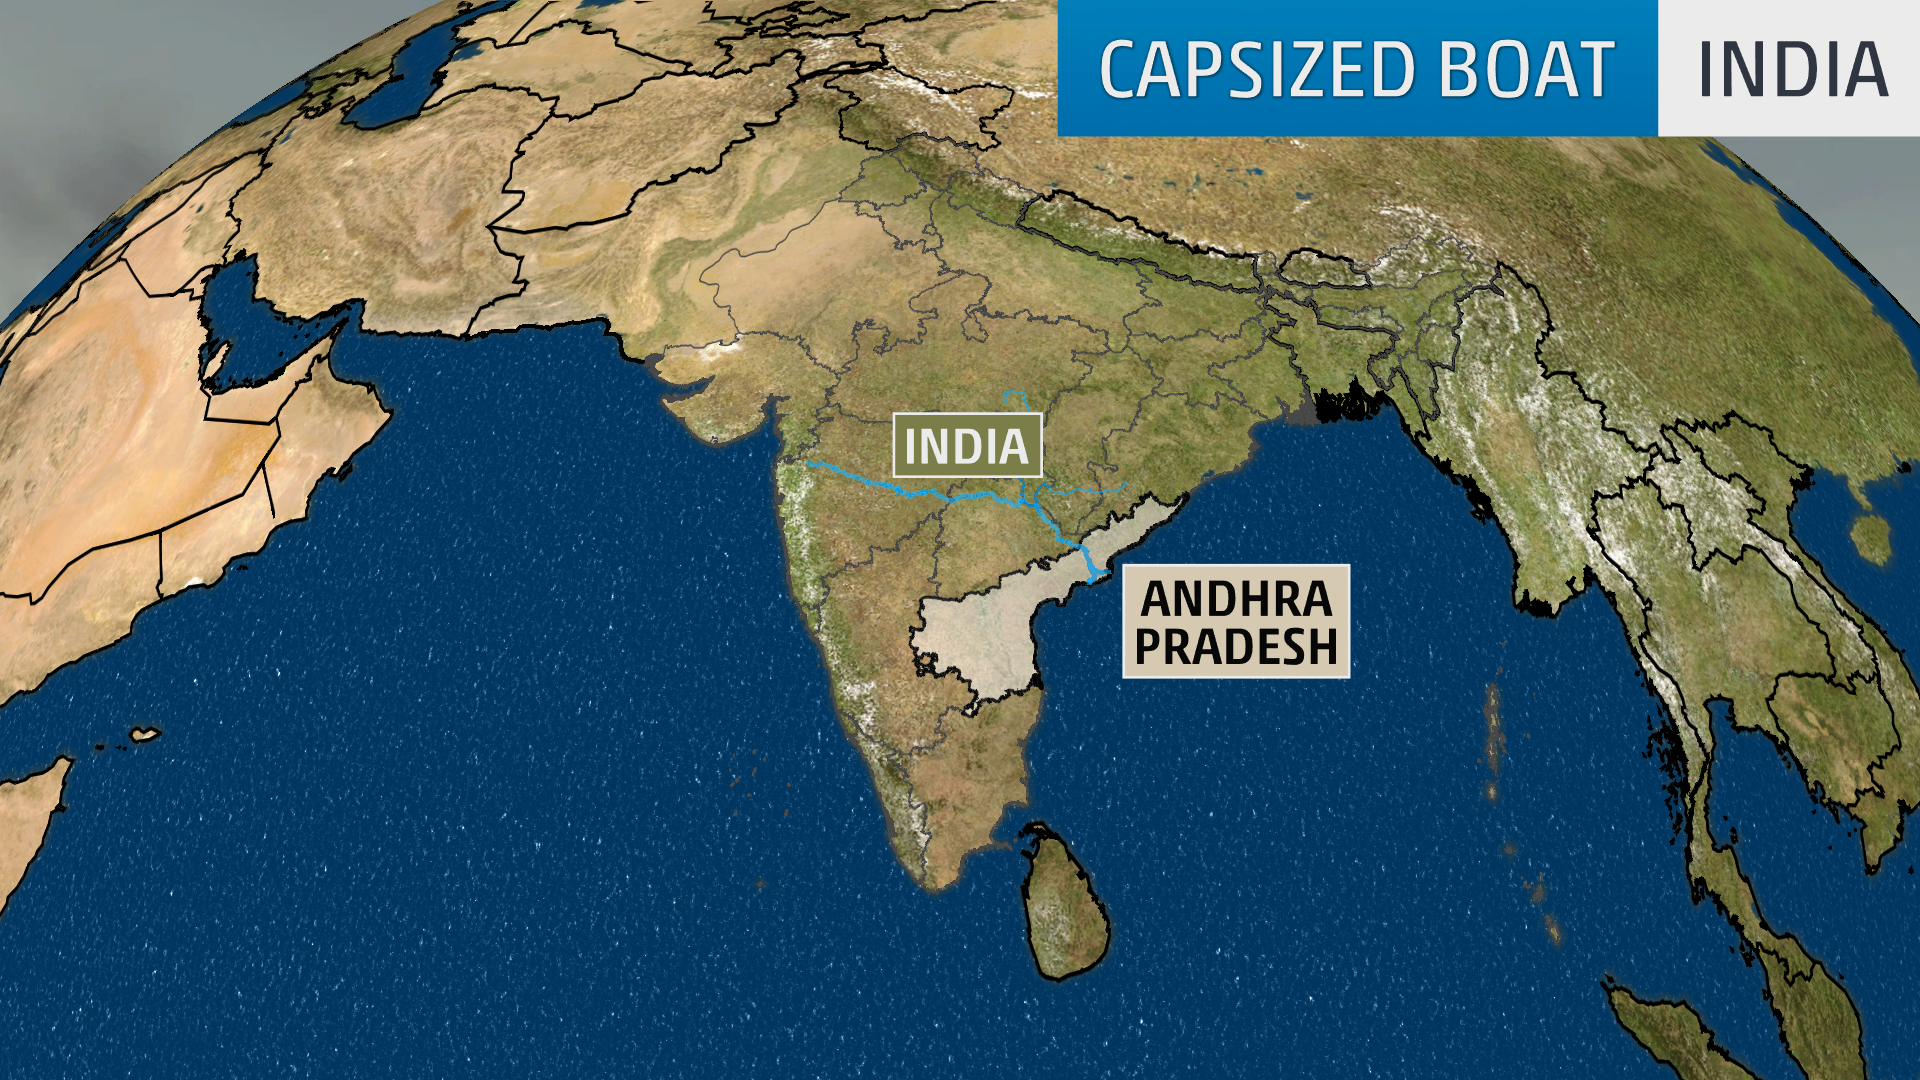 At Least 14 Dead, 24 Missing After Tourist Boat Capsizes on India's Rain-Swollen Godvari River